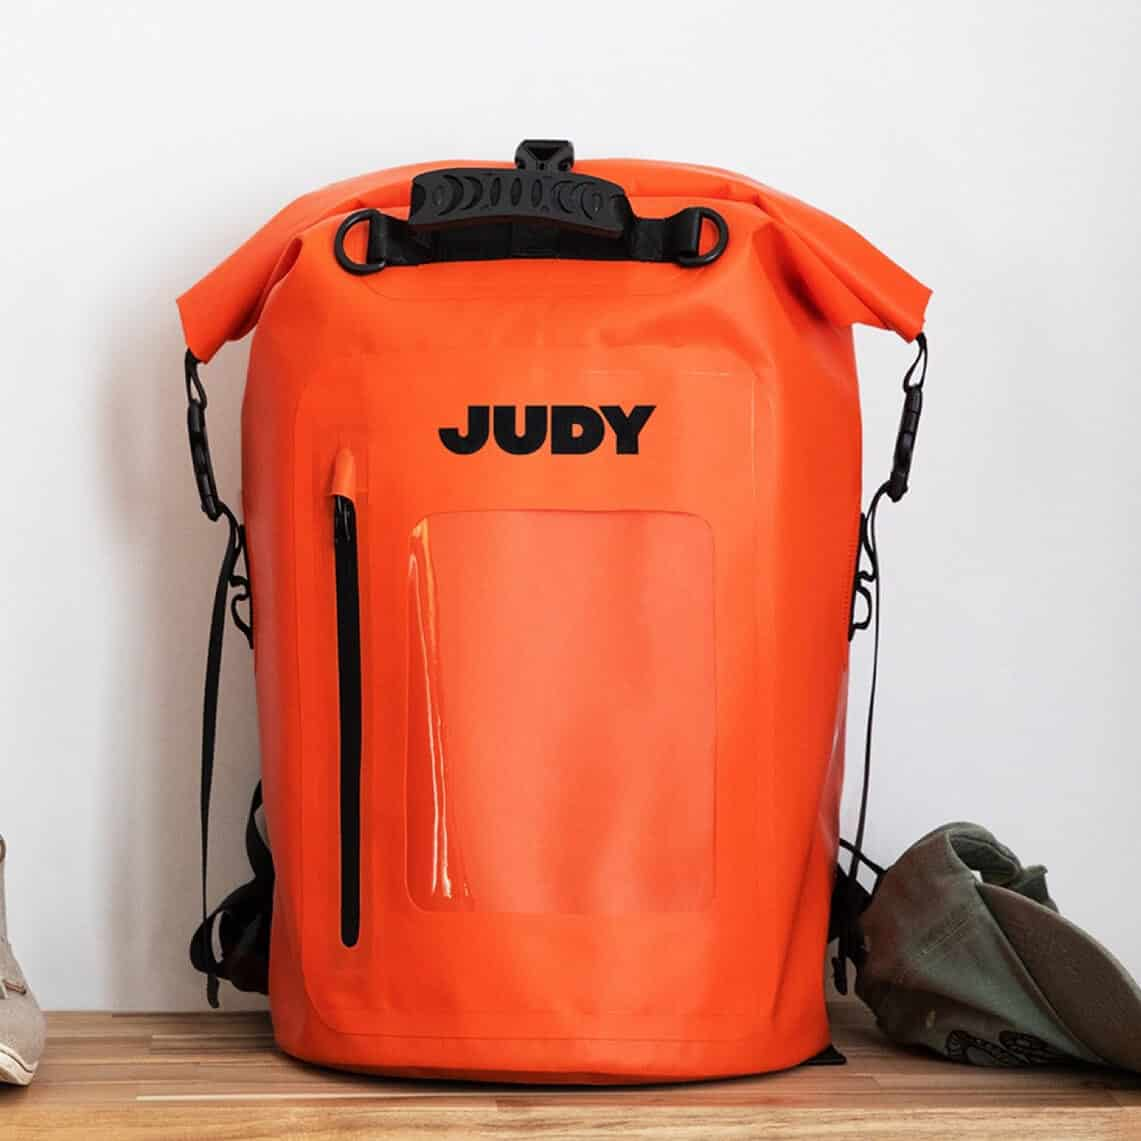 Judy - The Mover Max Survival Kit